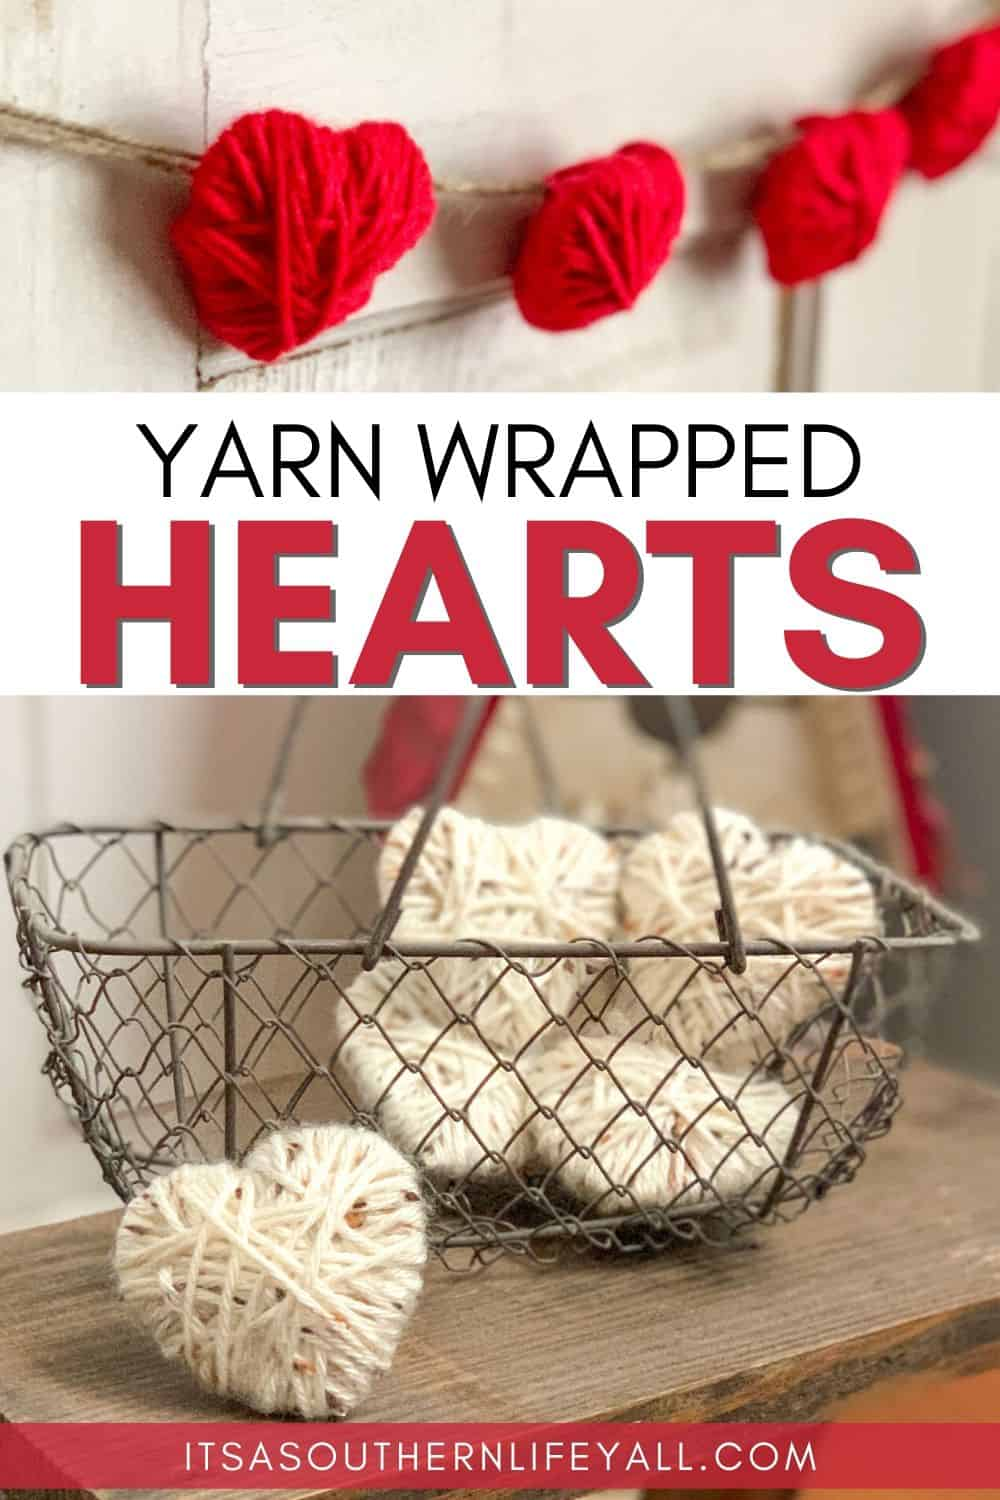 Images of yarn wrapped heart garland and basket full of wrapped hearts.